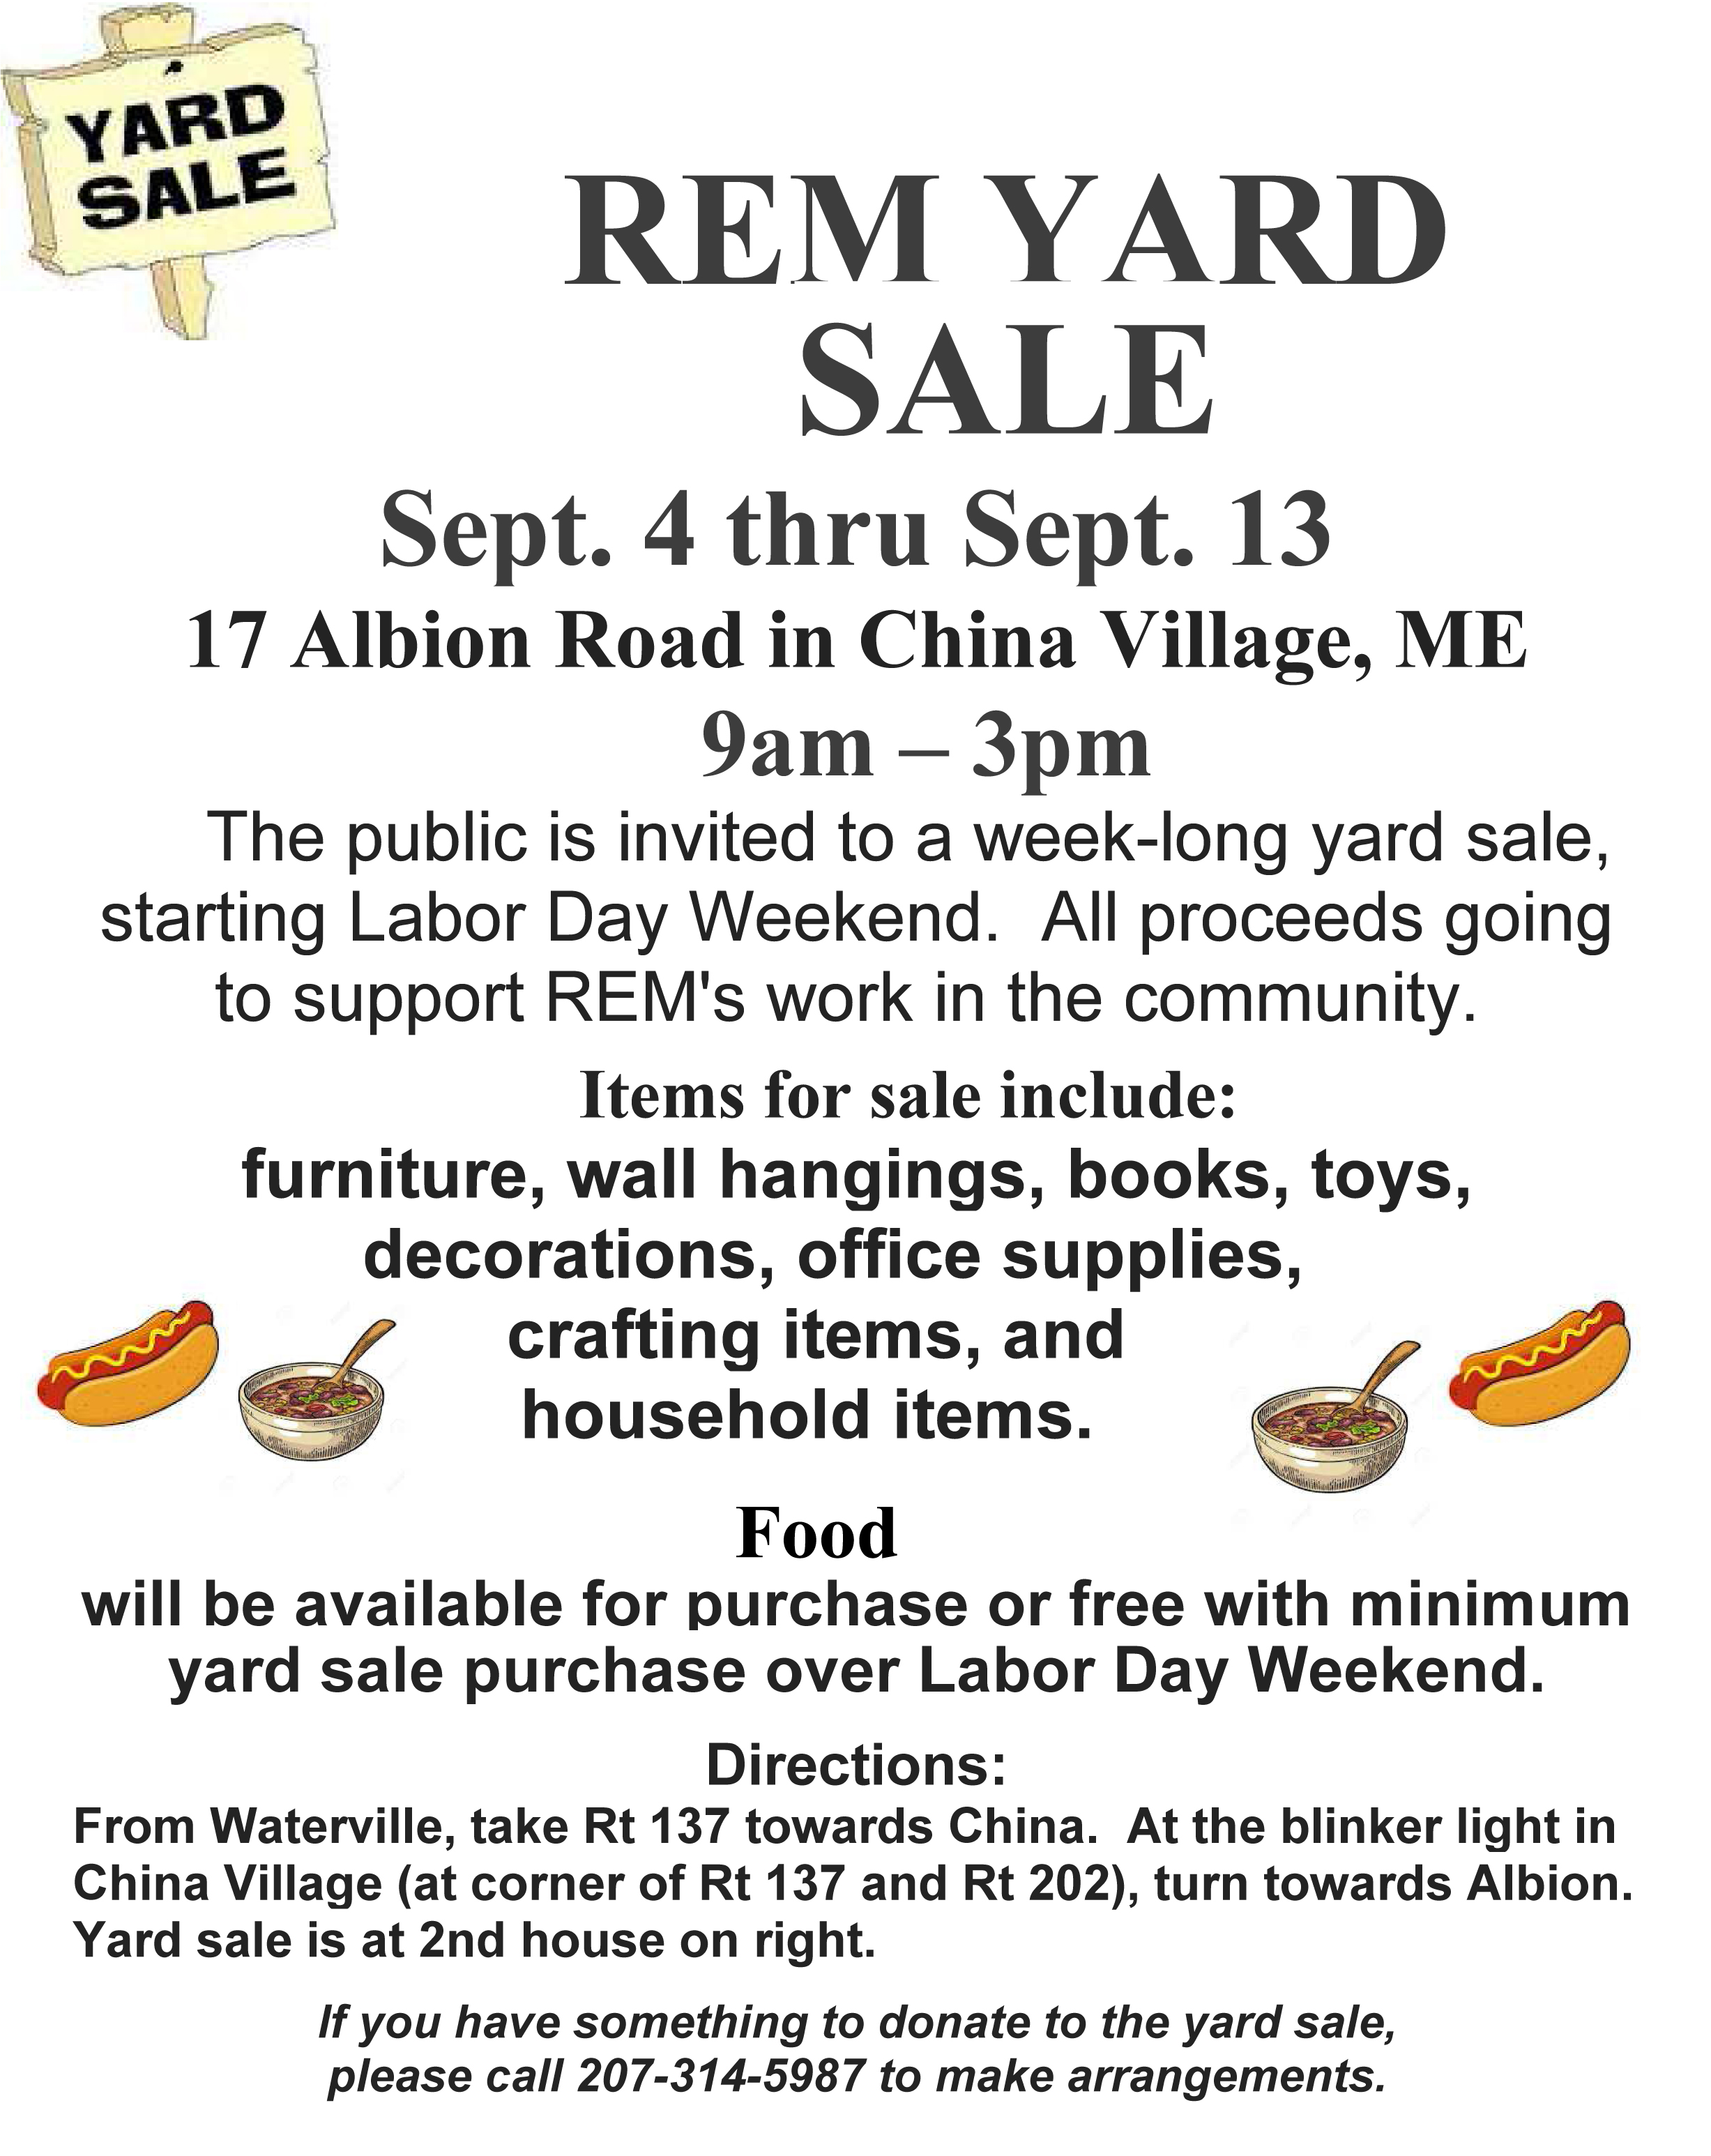 The public is invited to a week-long yard sale, starting Labor Day Weekend .  The yard sale will be held at 17 Albion Road in China Village, with the proceeds going to support REM's work in the community.  Items for sale include furniture, wall hangings, office supplies, books, decorations, crafting items, toys, household items.  Food will be available for purchase or free with minimum yard sale purchase over Labor Day Weekend.Hours of the sale: 9:00 AM to 3:00 PM, Friday, September 4th through Sunday, September 13th, 2020.Directions: From Waterville, take Rt 137 towards China. At blinker light in China Village (at corner of Rt 137 and Rt 202), turn towards Albion. Yard sale is at 2nd house on right.If you have something to donate to the yard sale, please call 207-314-5987 to make arrangements.